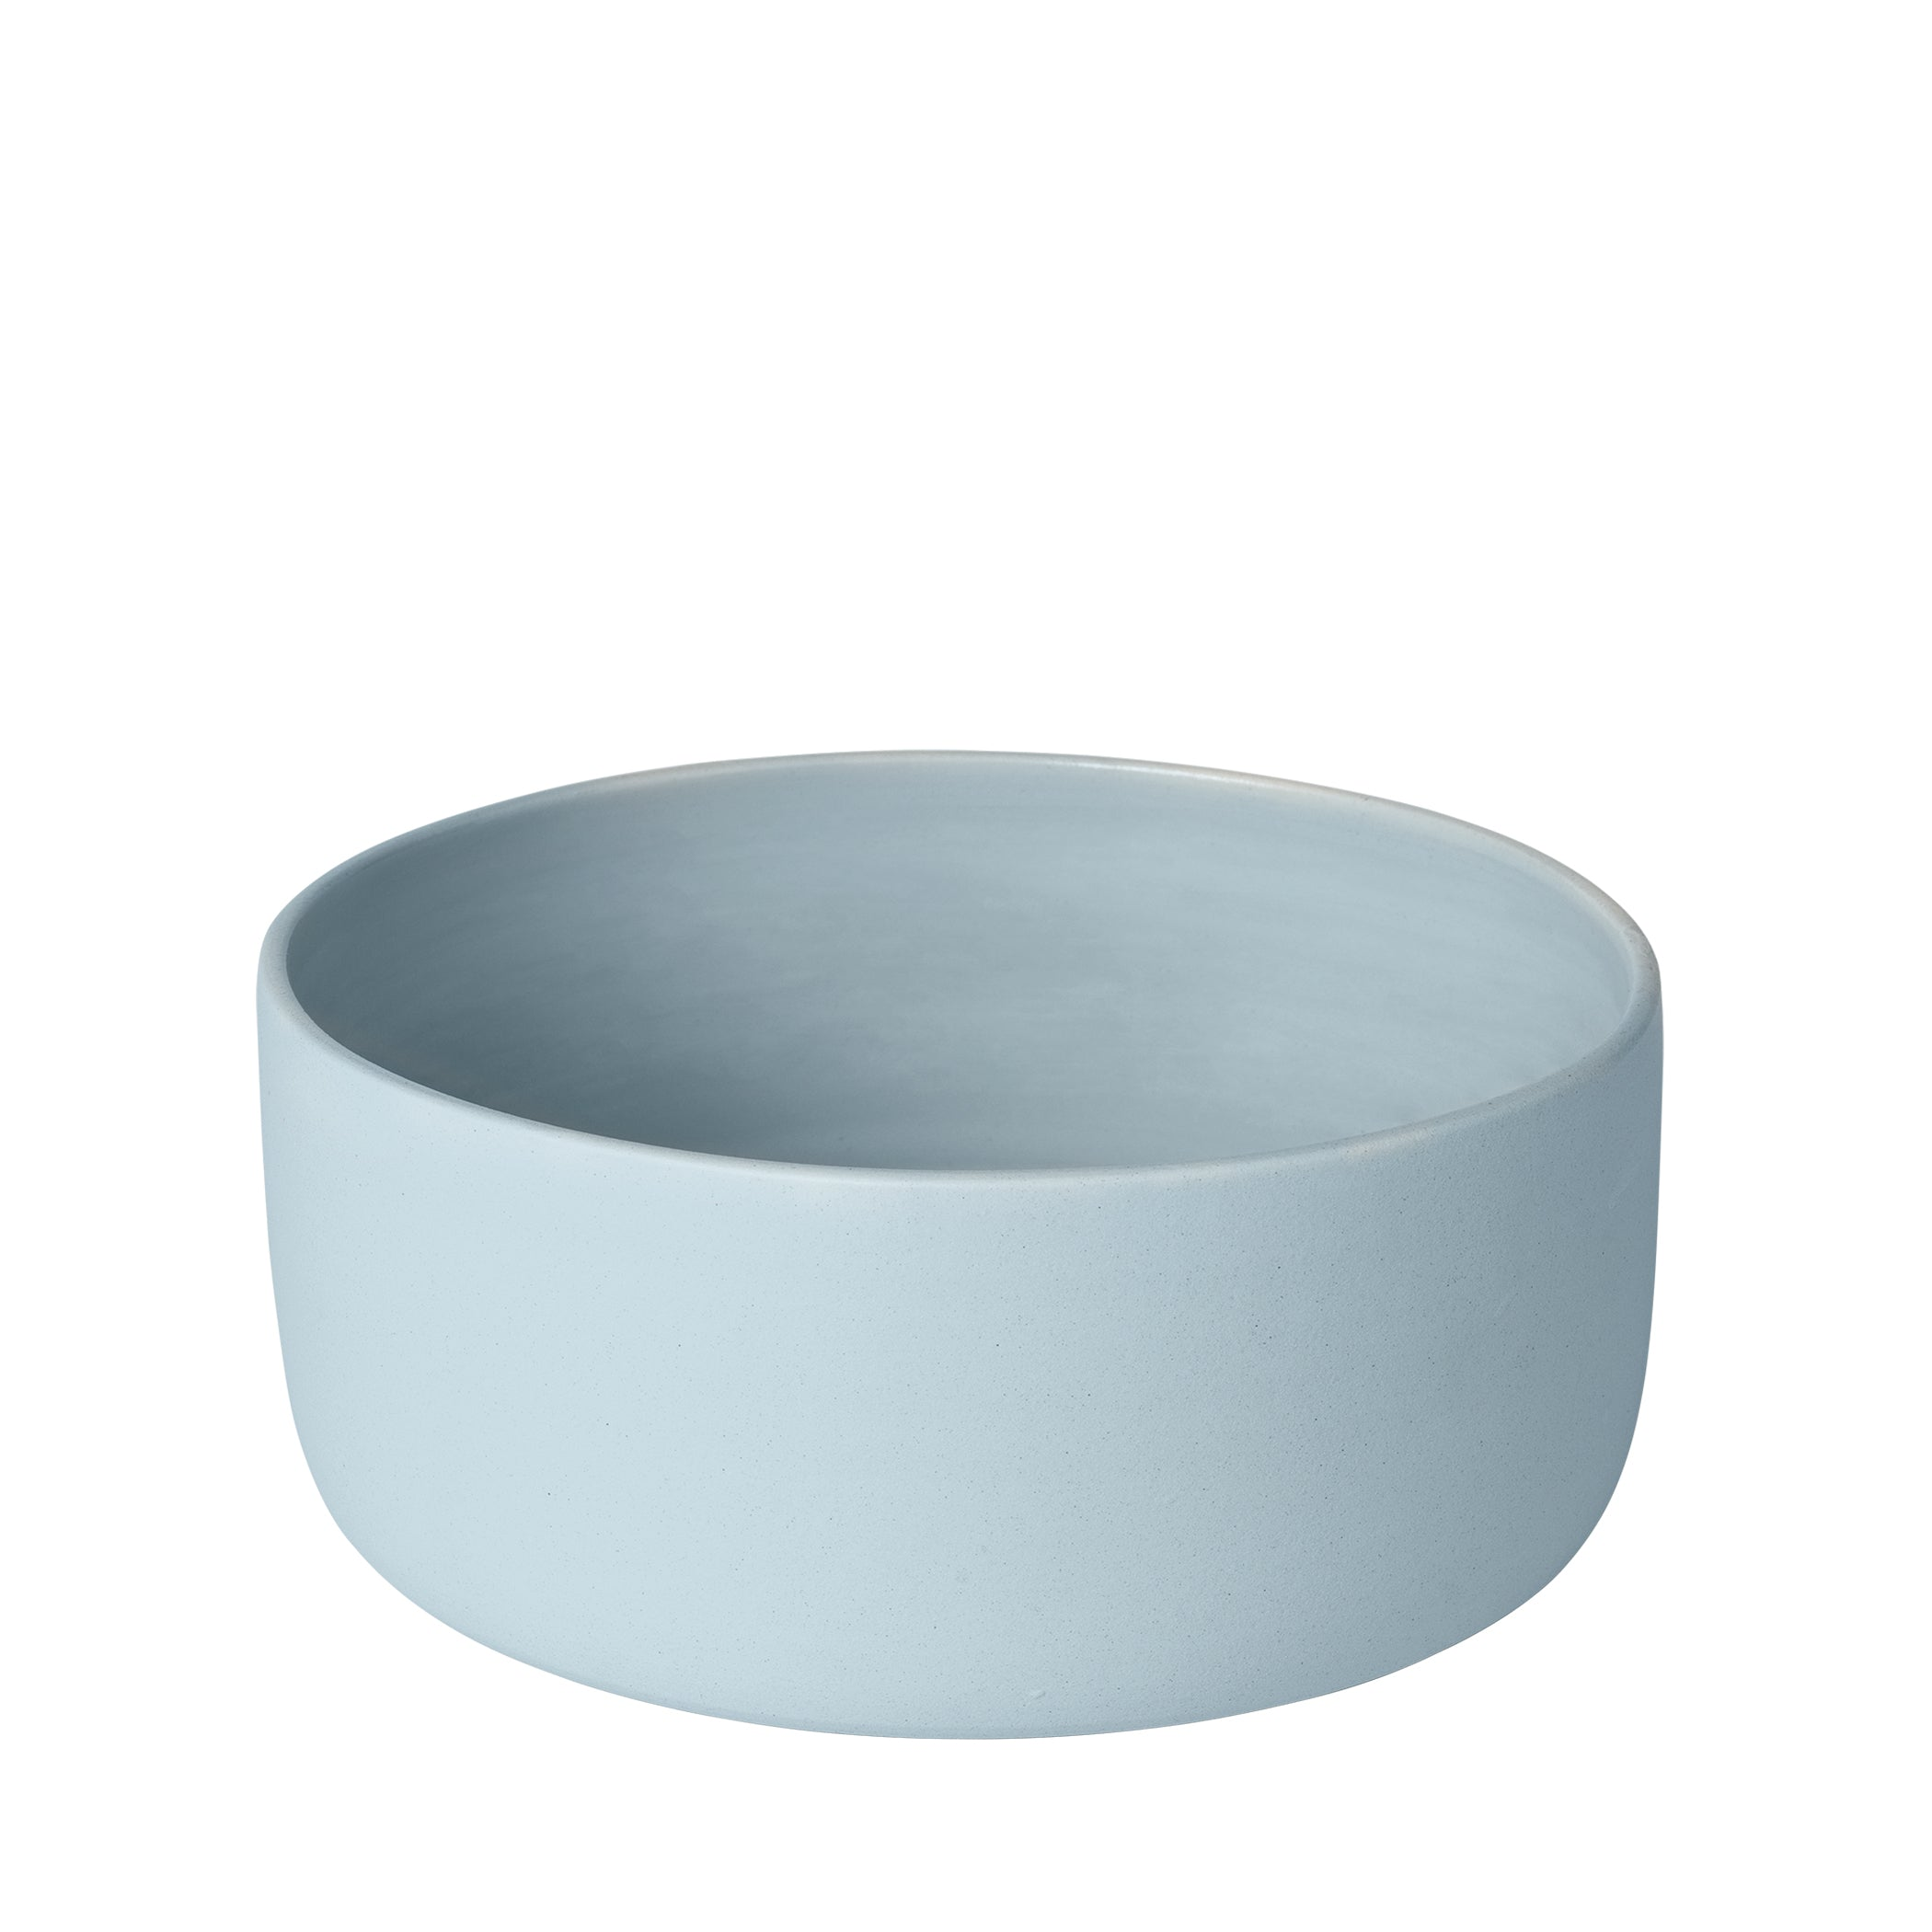 PISU 07 SKY BLUE BOWL ceramic